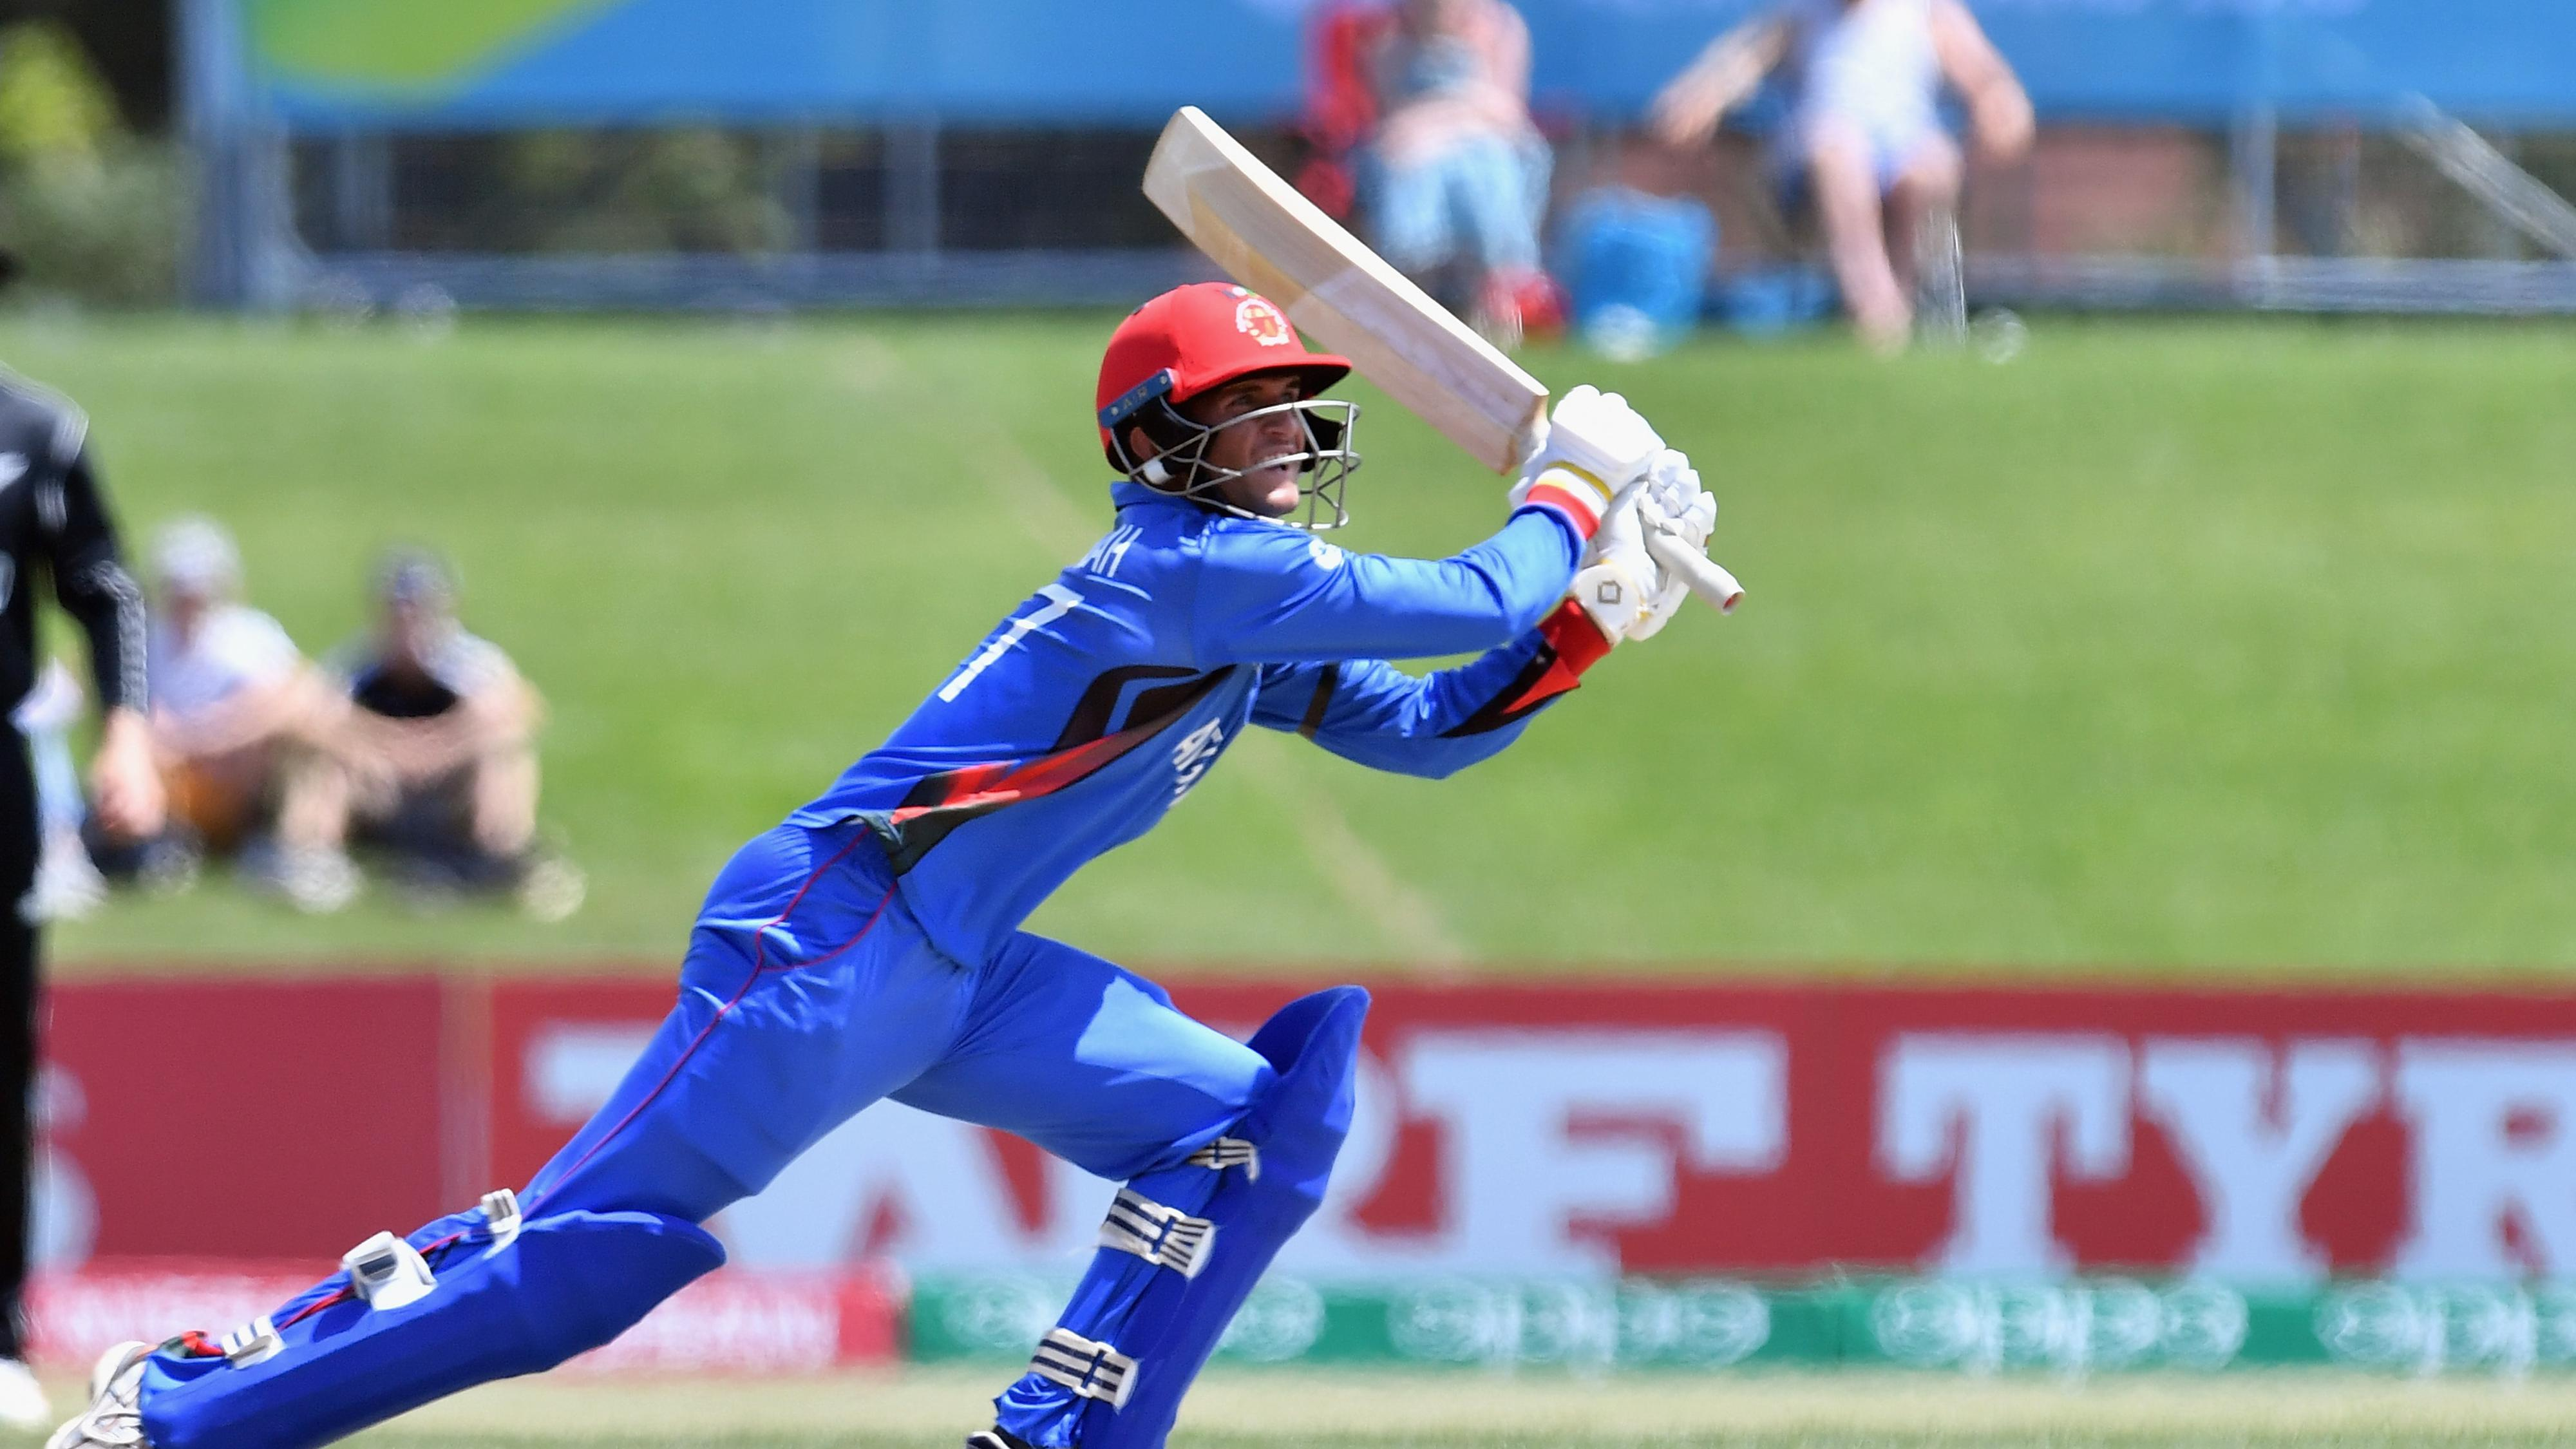 Azmatullah Omarzai hit 66 off 23 balls, helping Afghanistan loot 116 runs in the last 10 overs (Image: ICC)